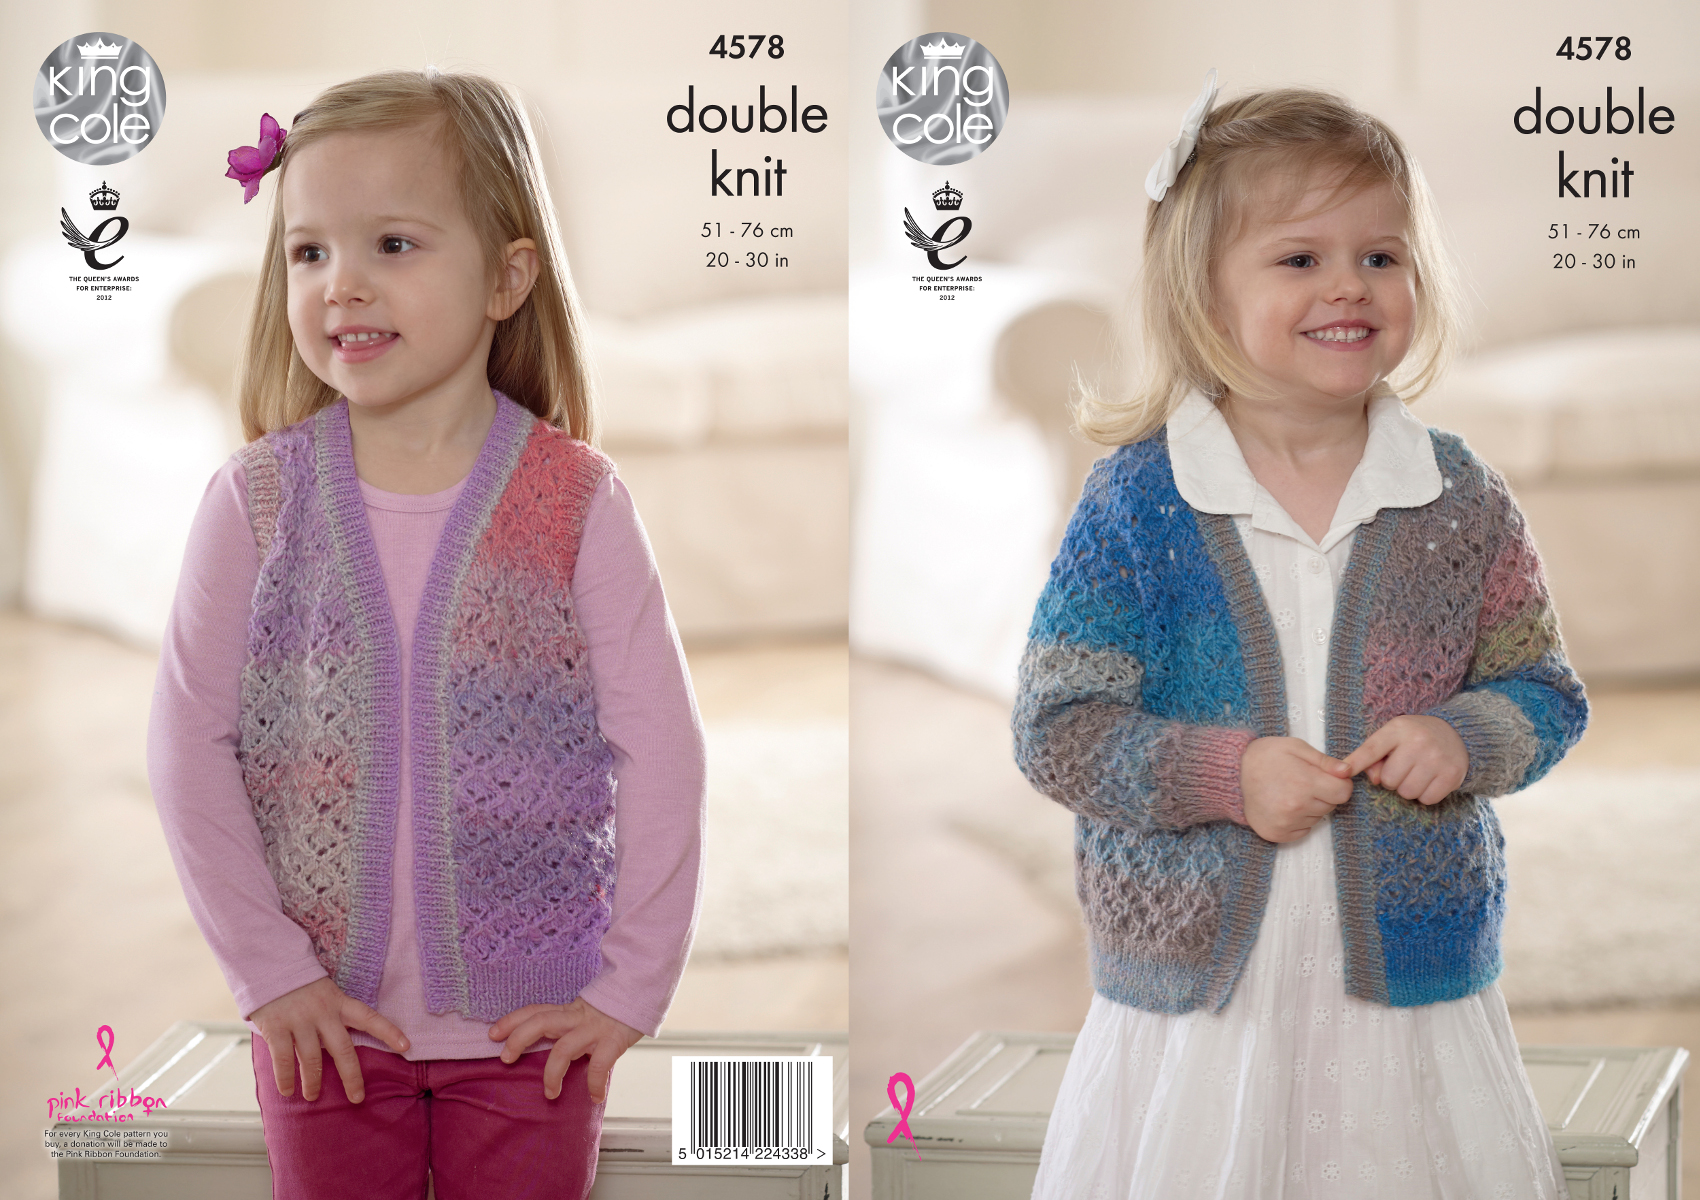 Lace cardigan waistcoat girls double knitting pattern king cole lace cardigan waistcoat girls double knitting pattern king cole sprite dk 4578 bankloansurffo Image collections